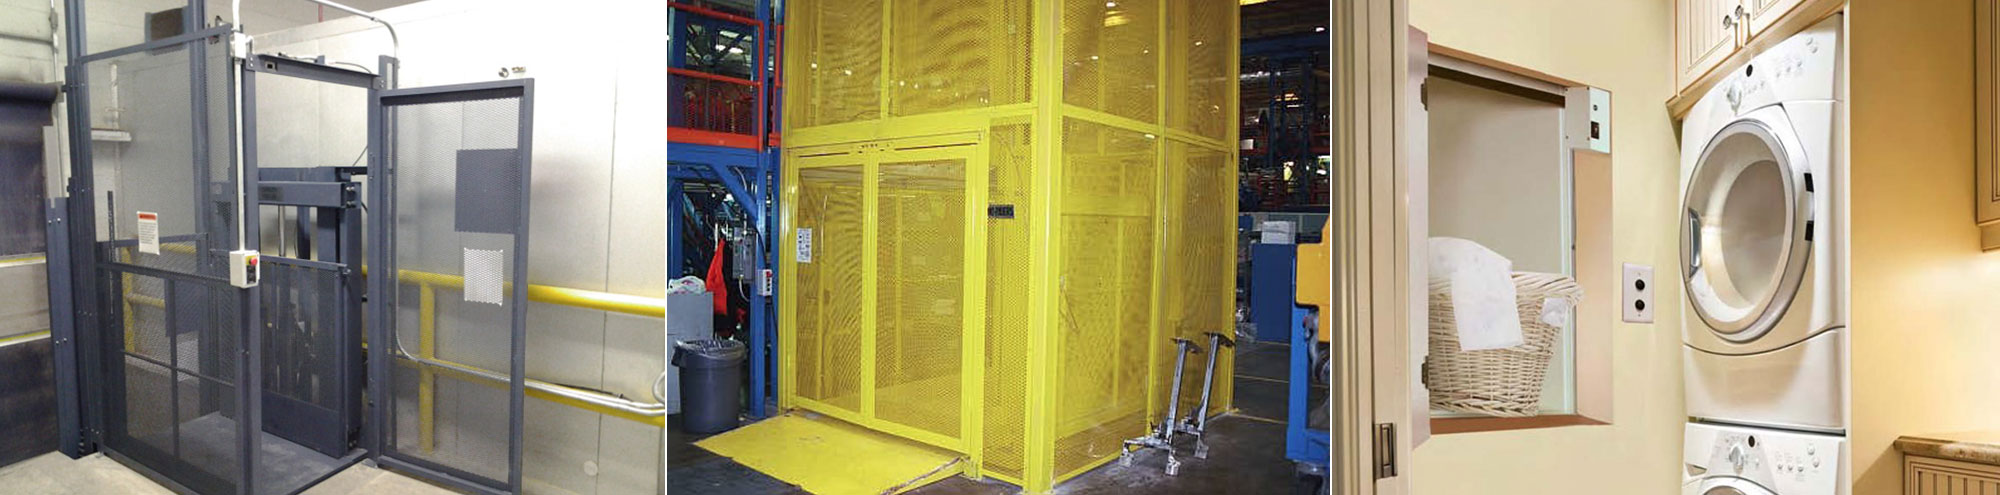 Slide Dumbwaiter